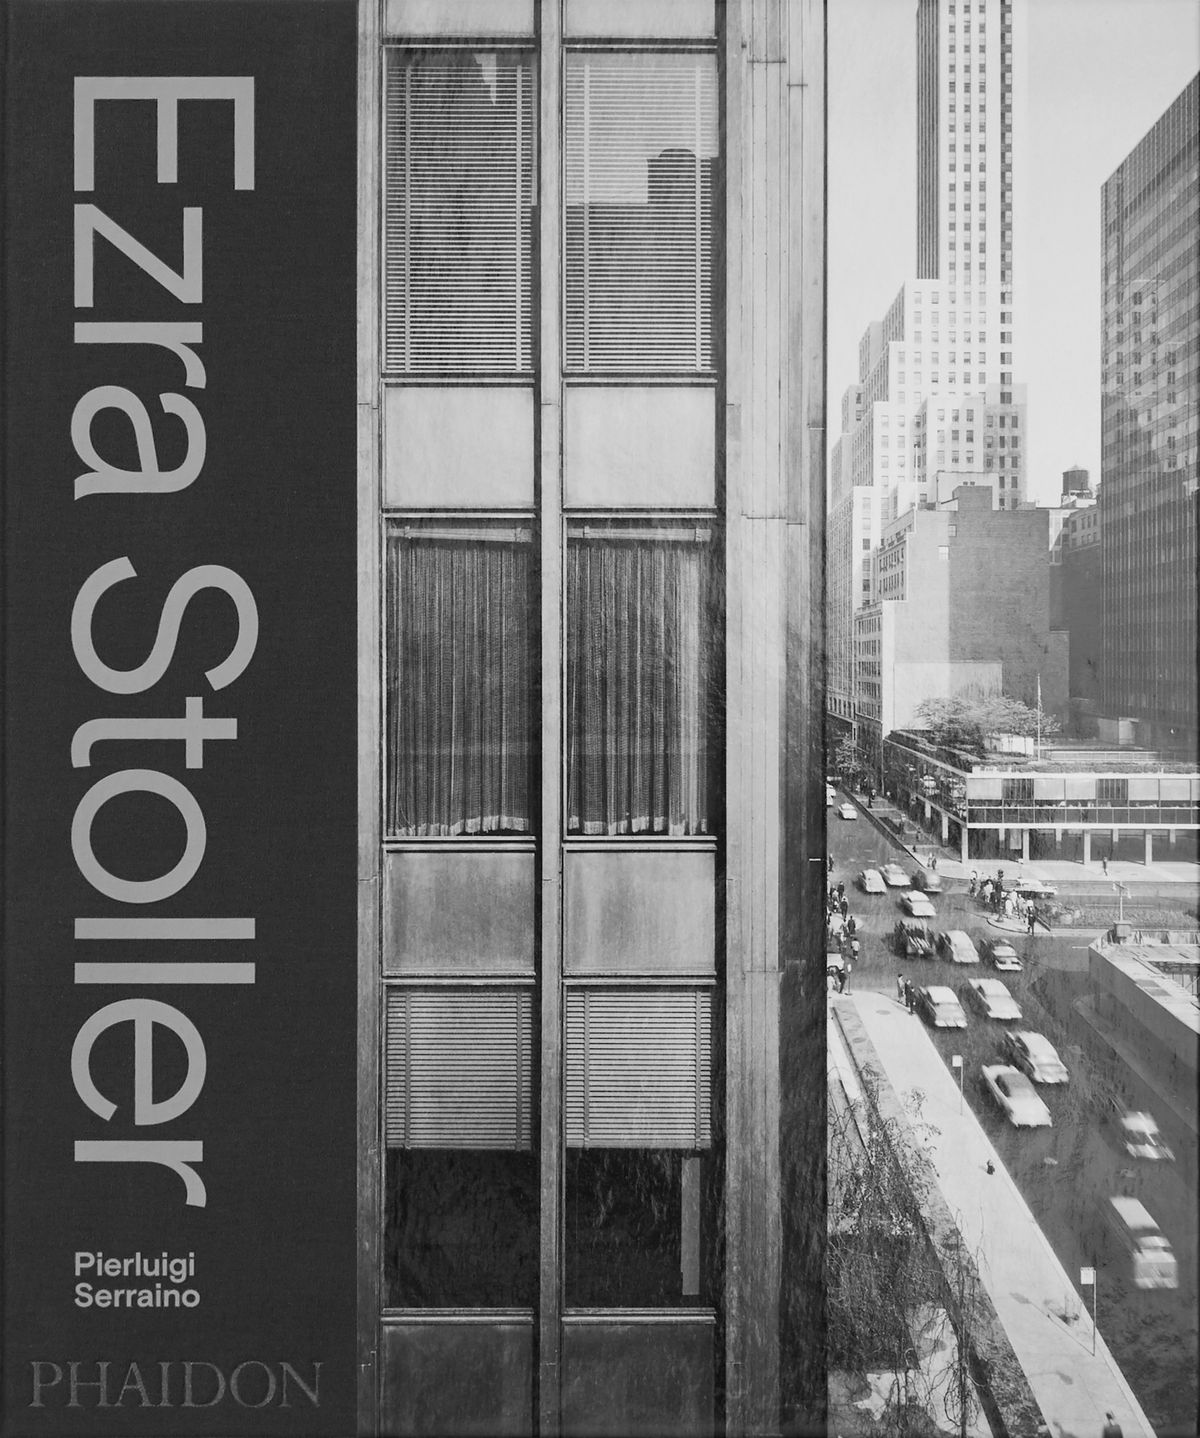 A book cover showing a black-and-white photograph of a New York City building's windows with a streetscape in the distance.